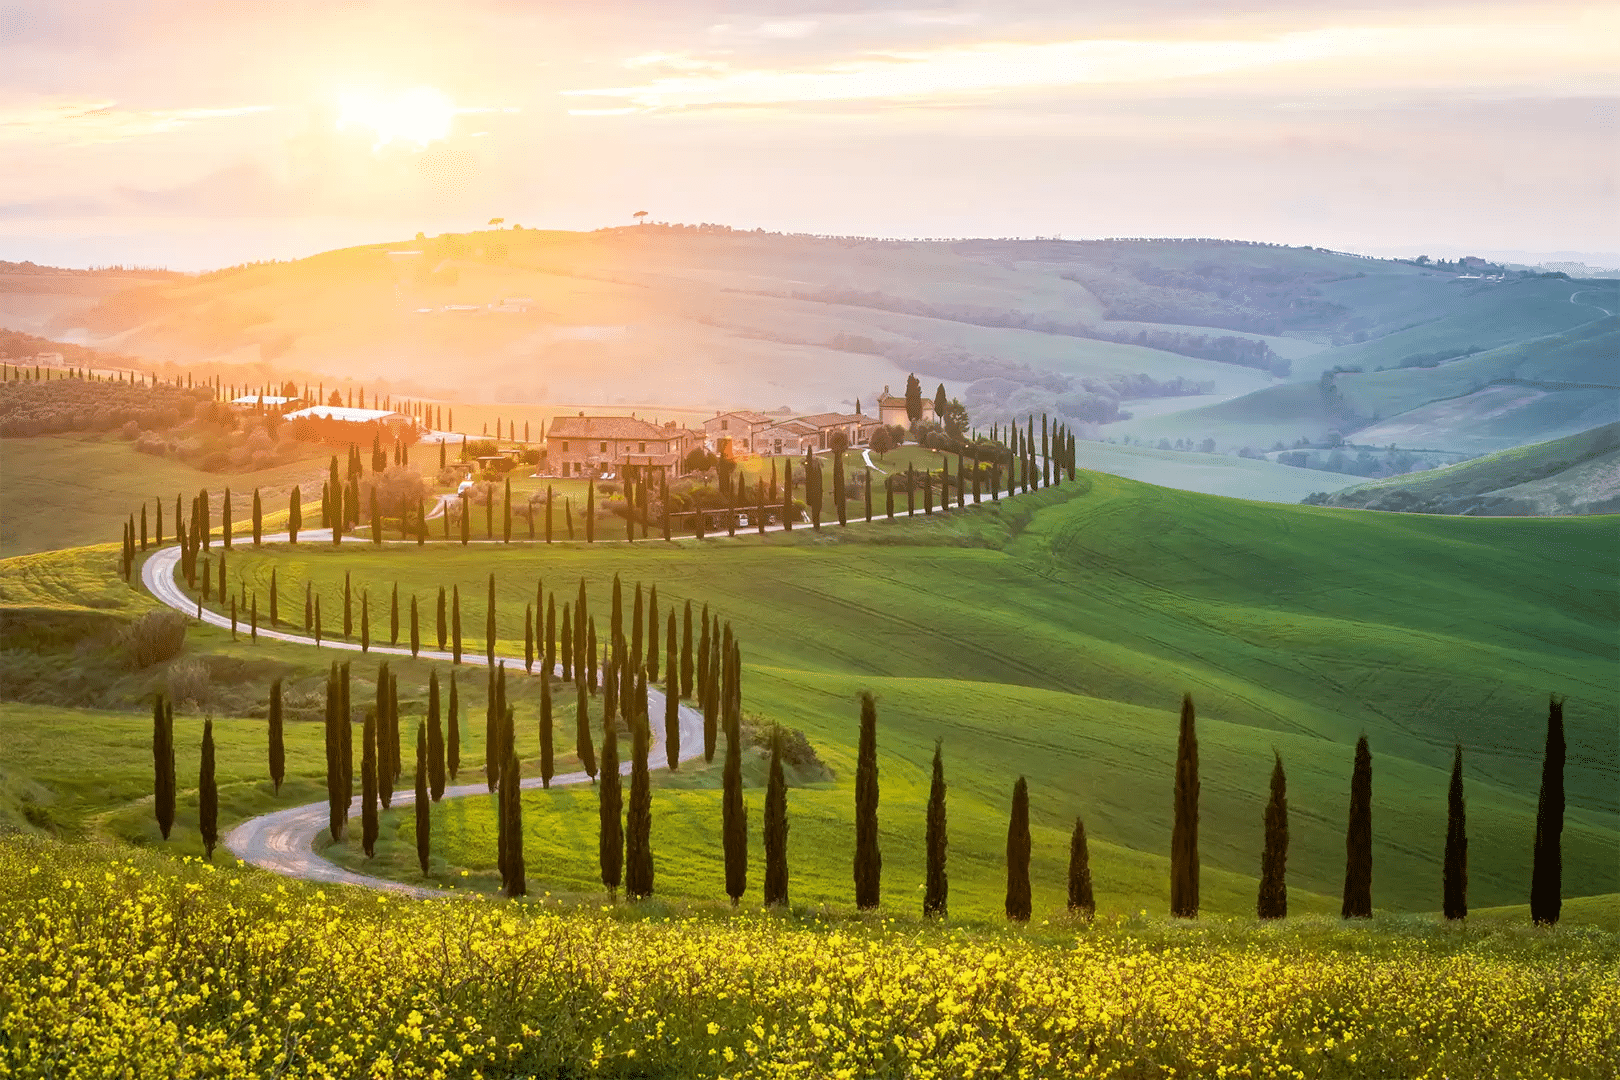 Conde Nast Traveller picture of Italian Countryside with fileds and trees lining a snaking road off to an estate in the distance behind which the sun is setting